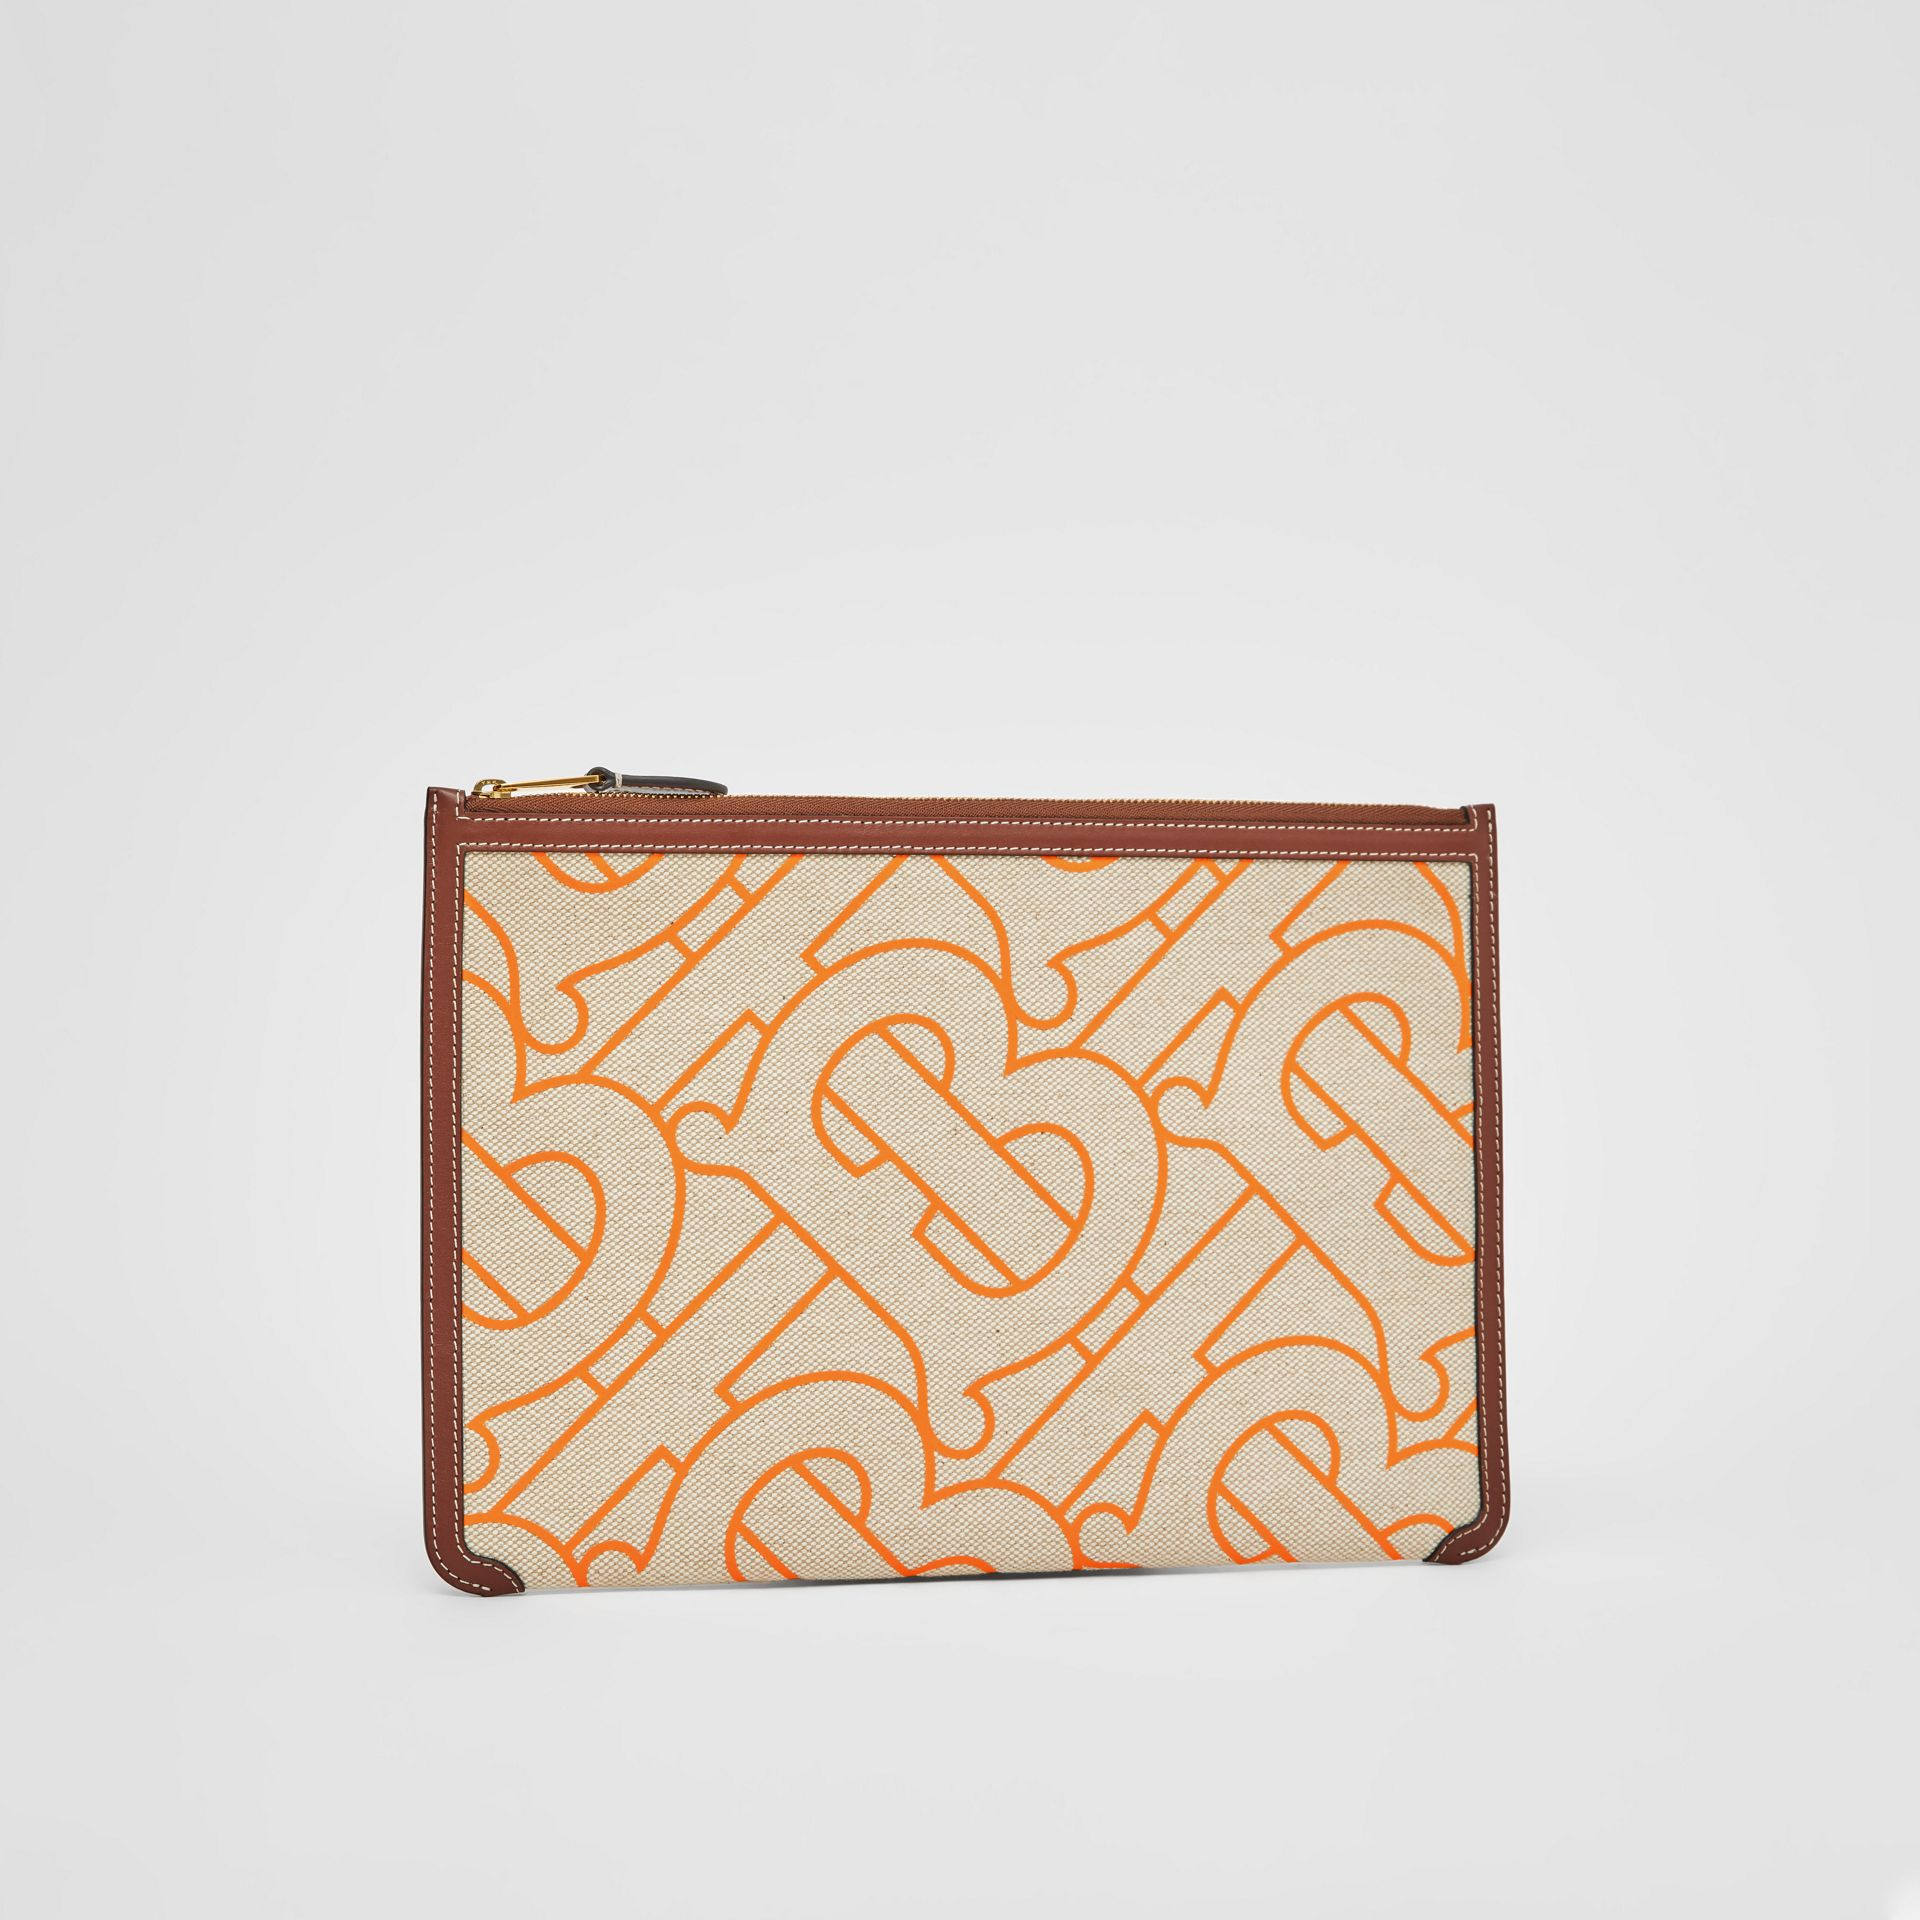 Monogram Motif Canvas and Leather Pouch in Natural/orange - Women | Burberry United States - gallery image 5